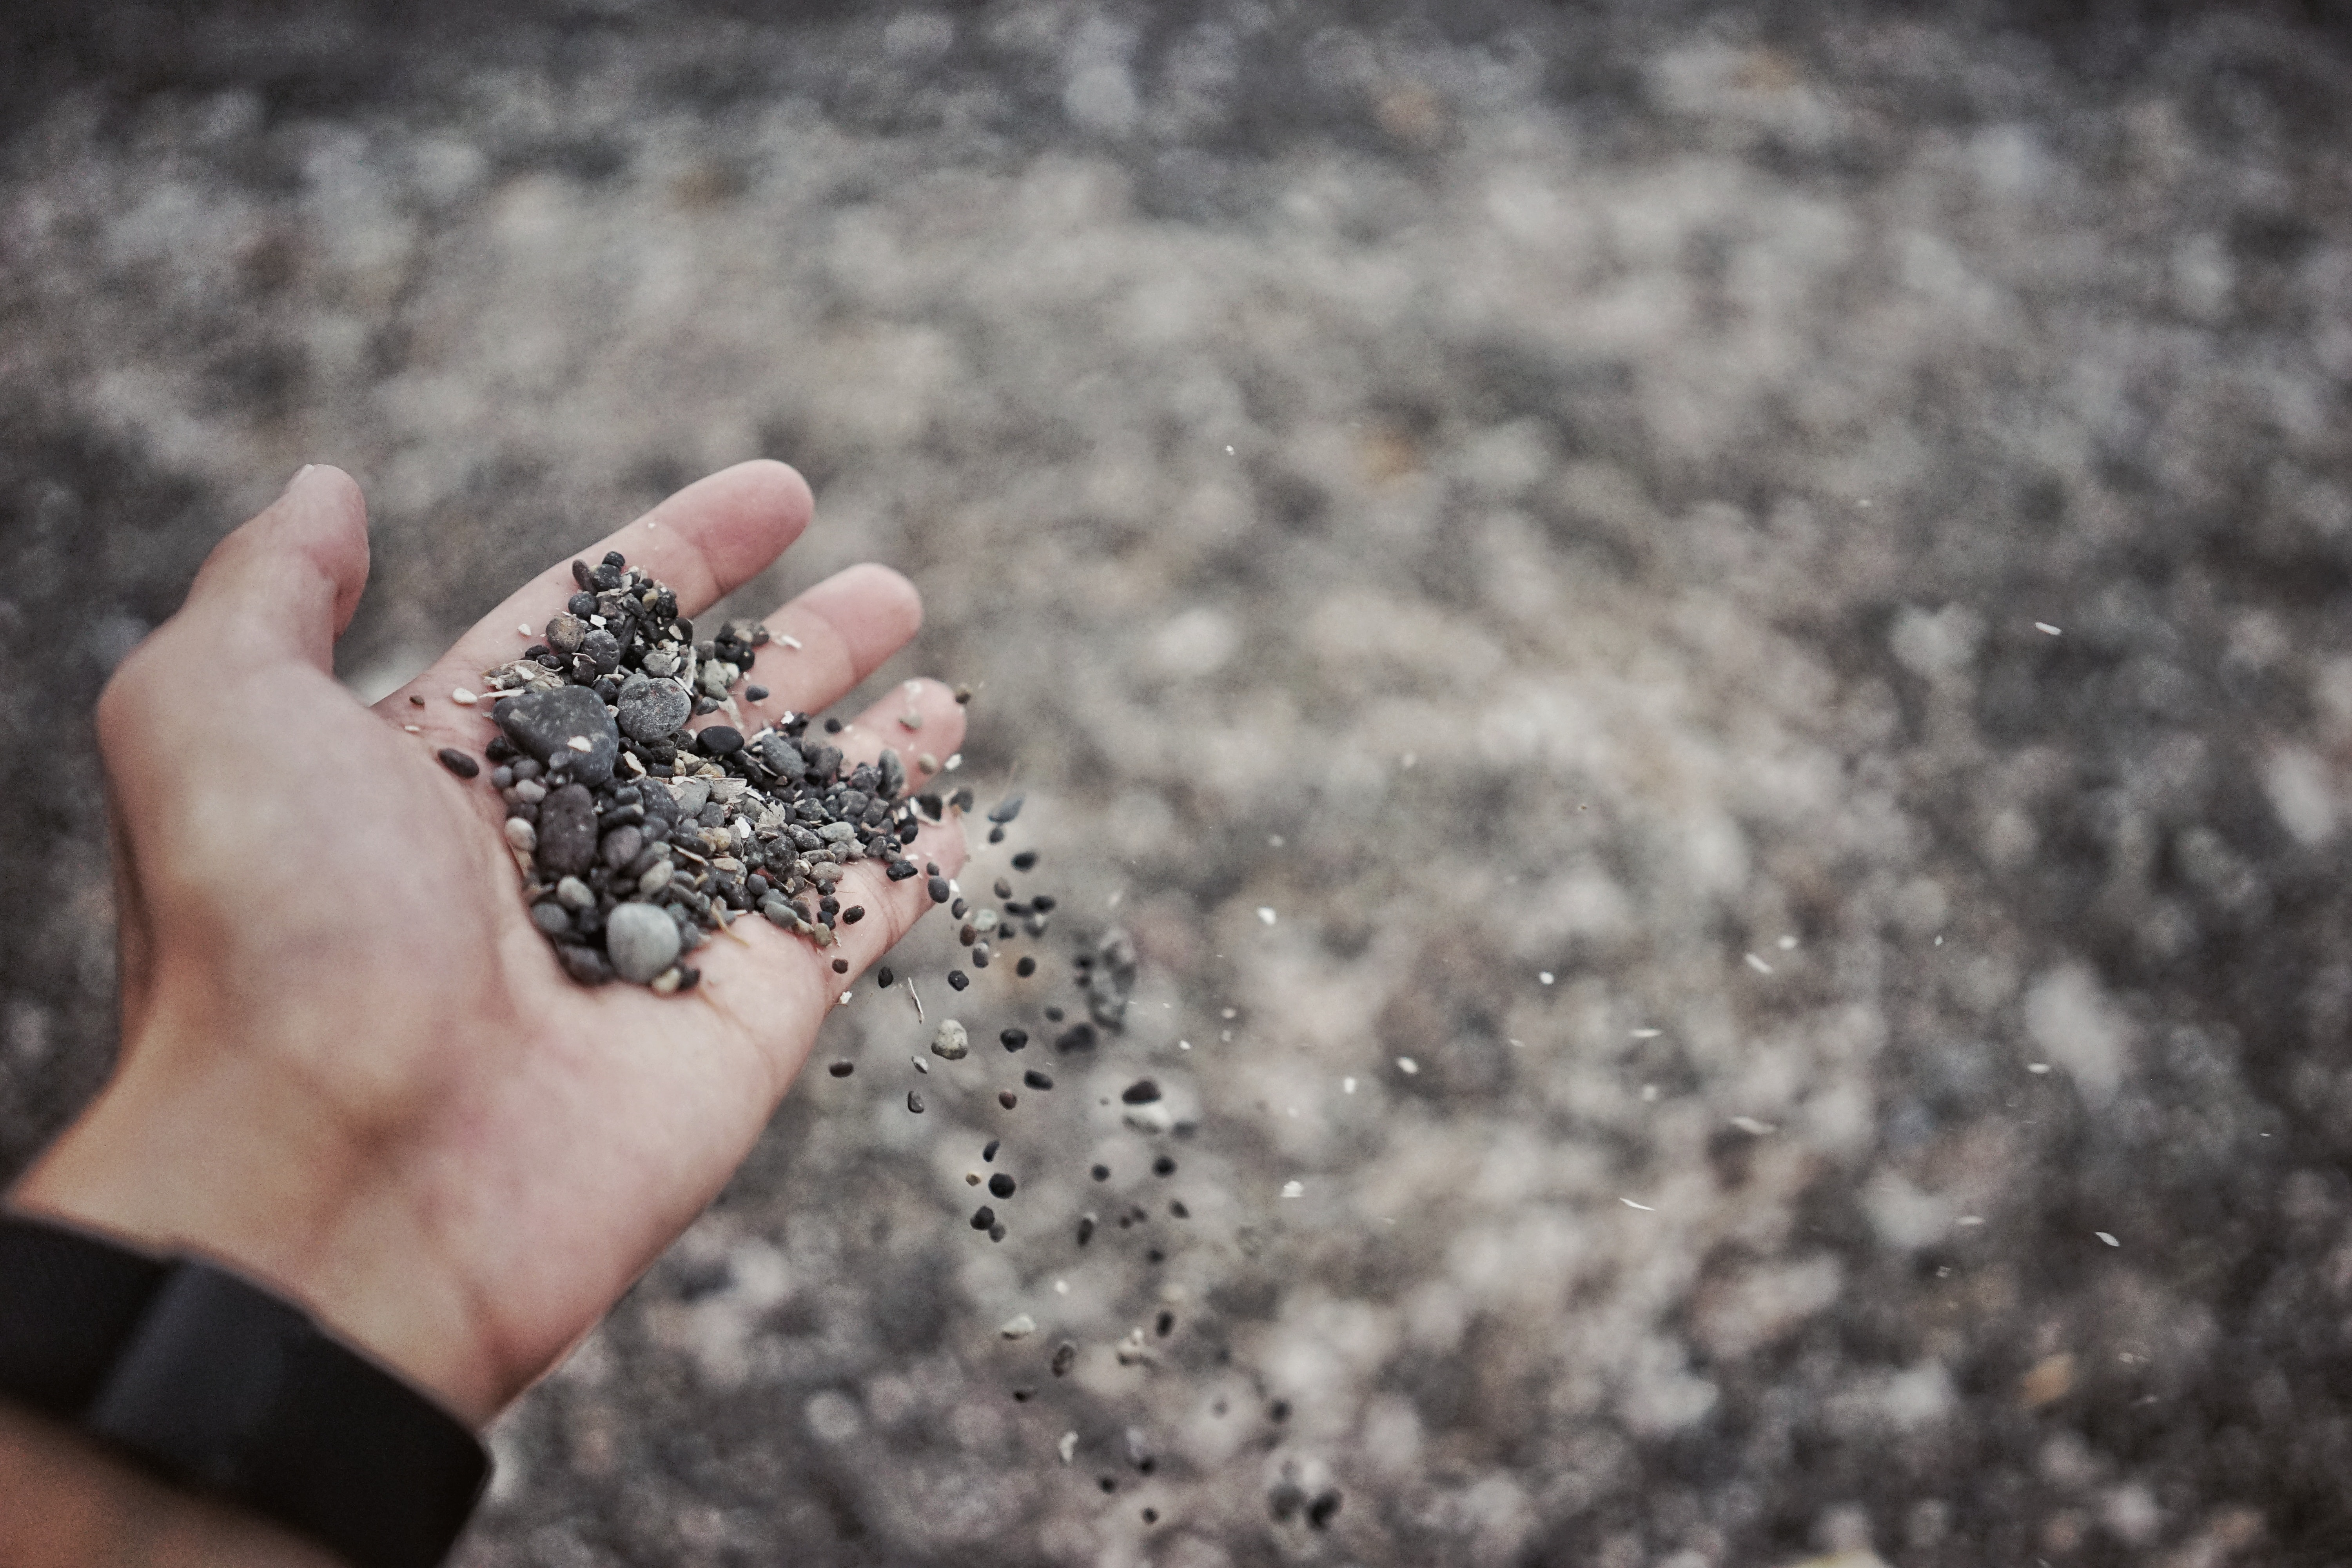 A person wearing a watch holding a bunch of gravel in their hand